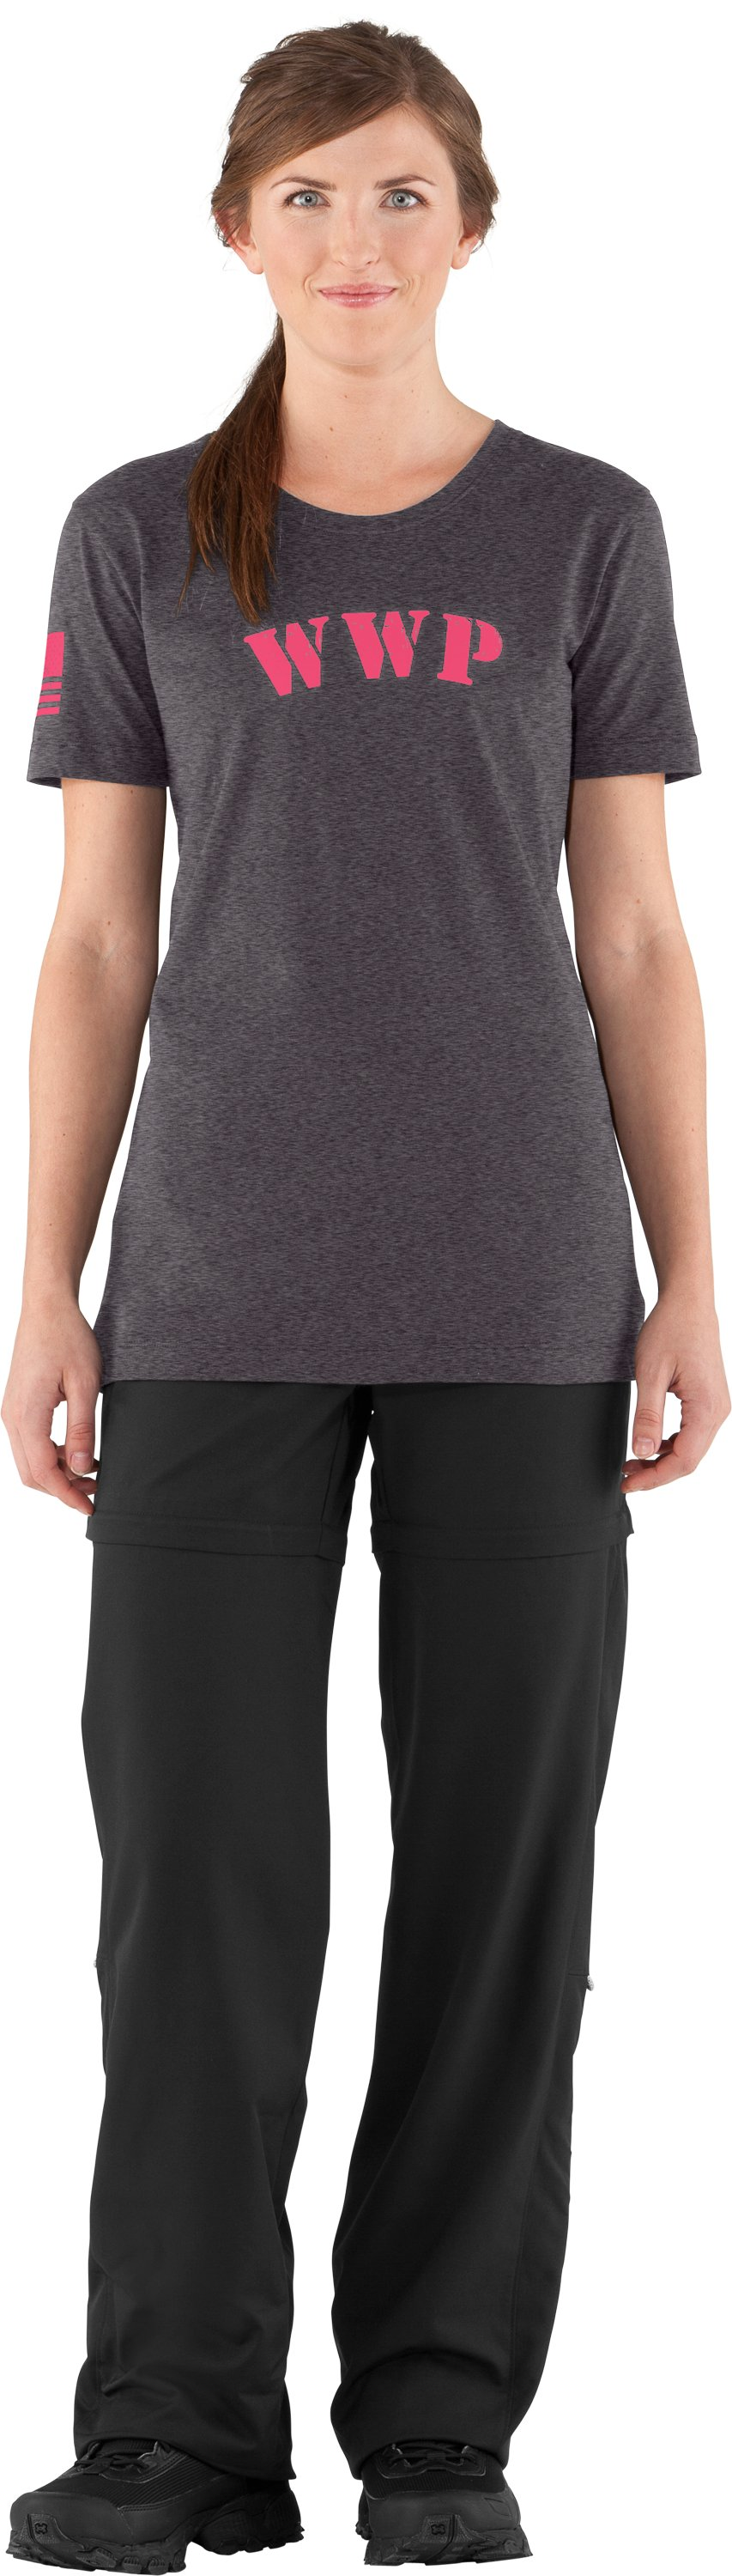 Women's WWP Short Sleeve T-Shirt, Carbon Heather, Front